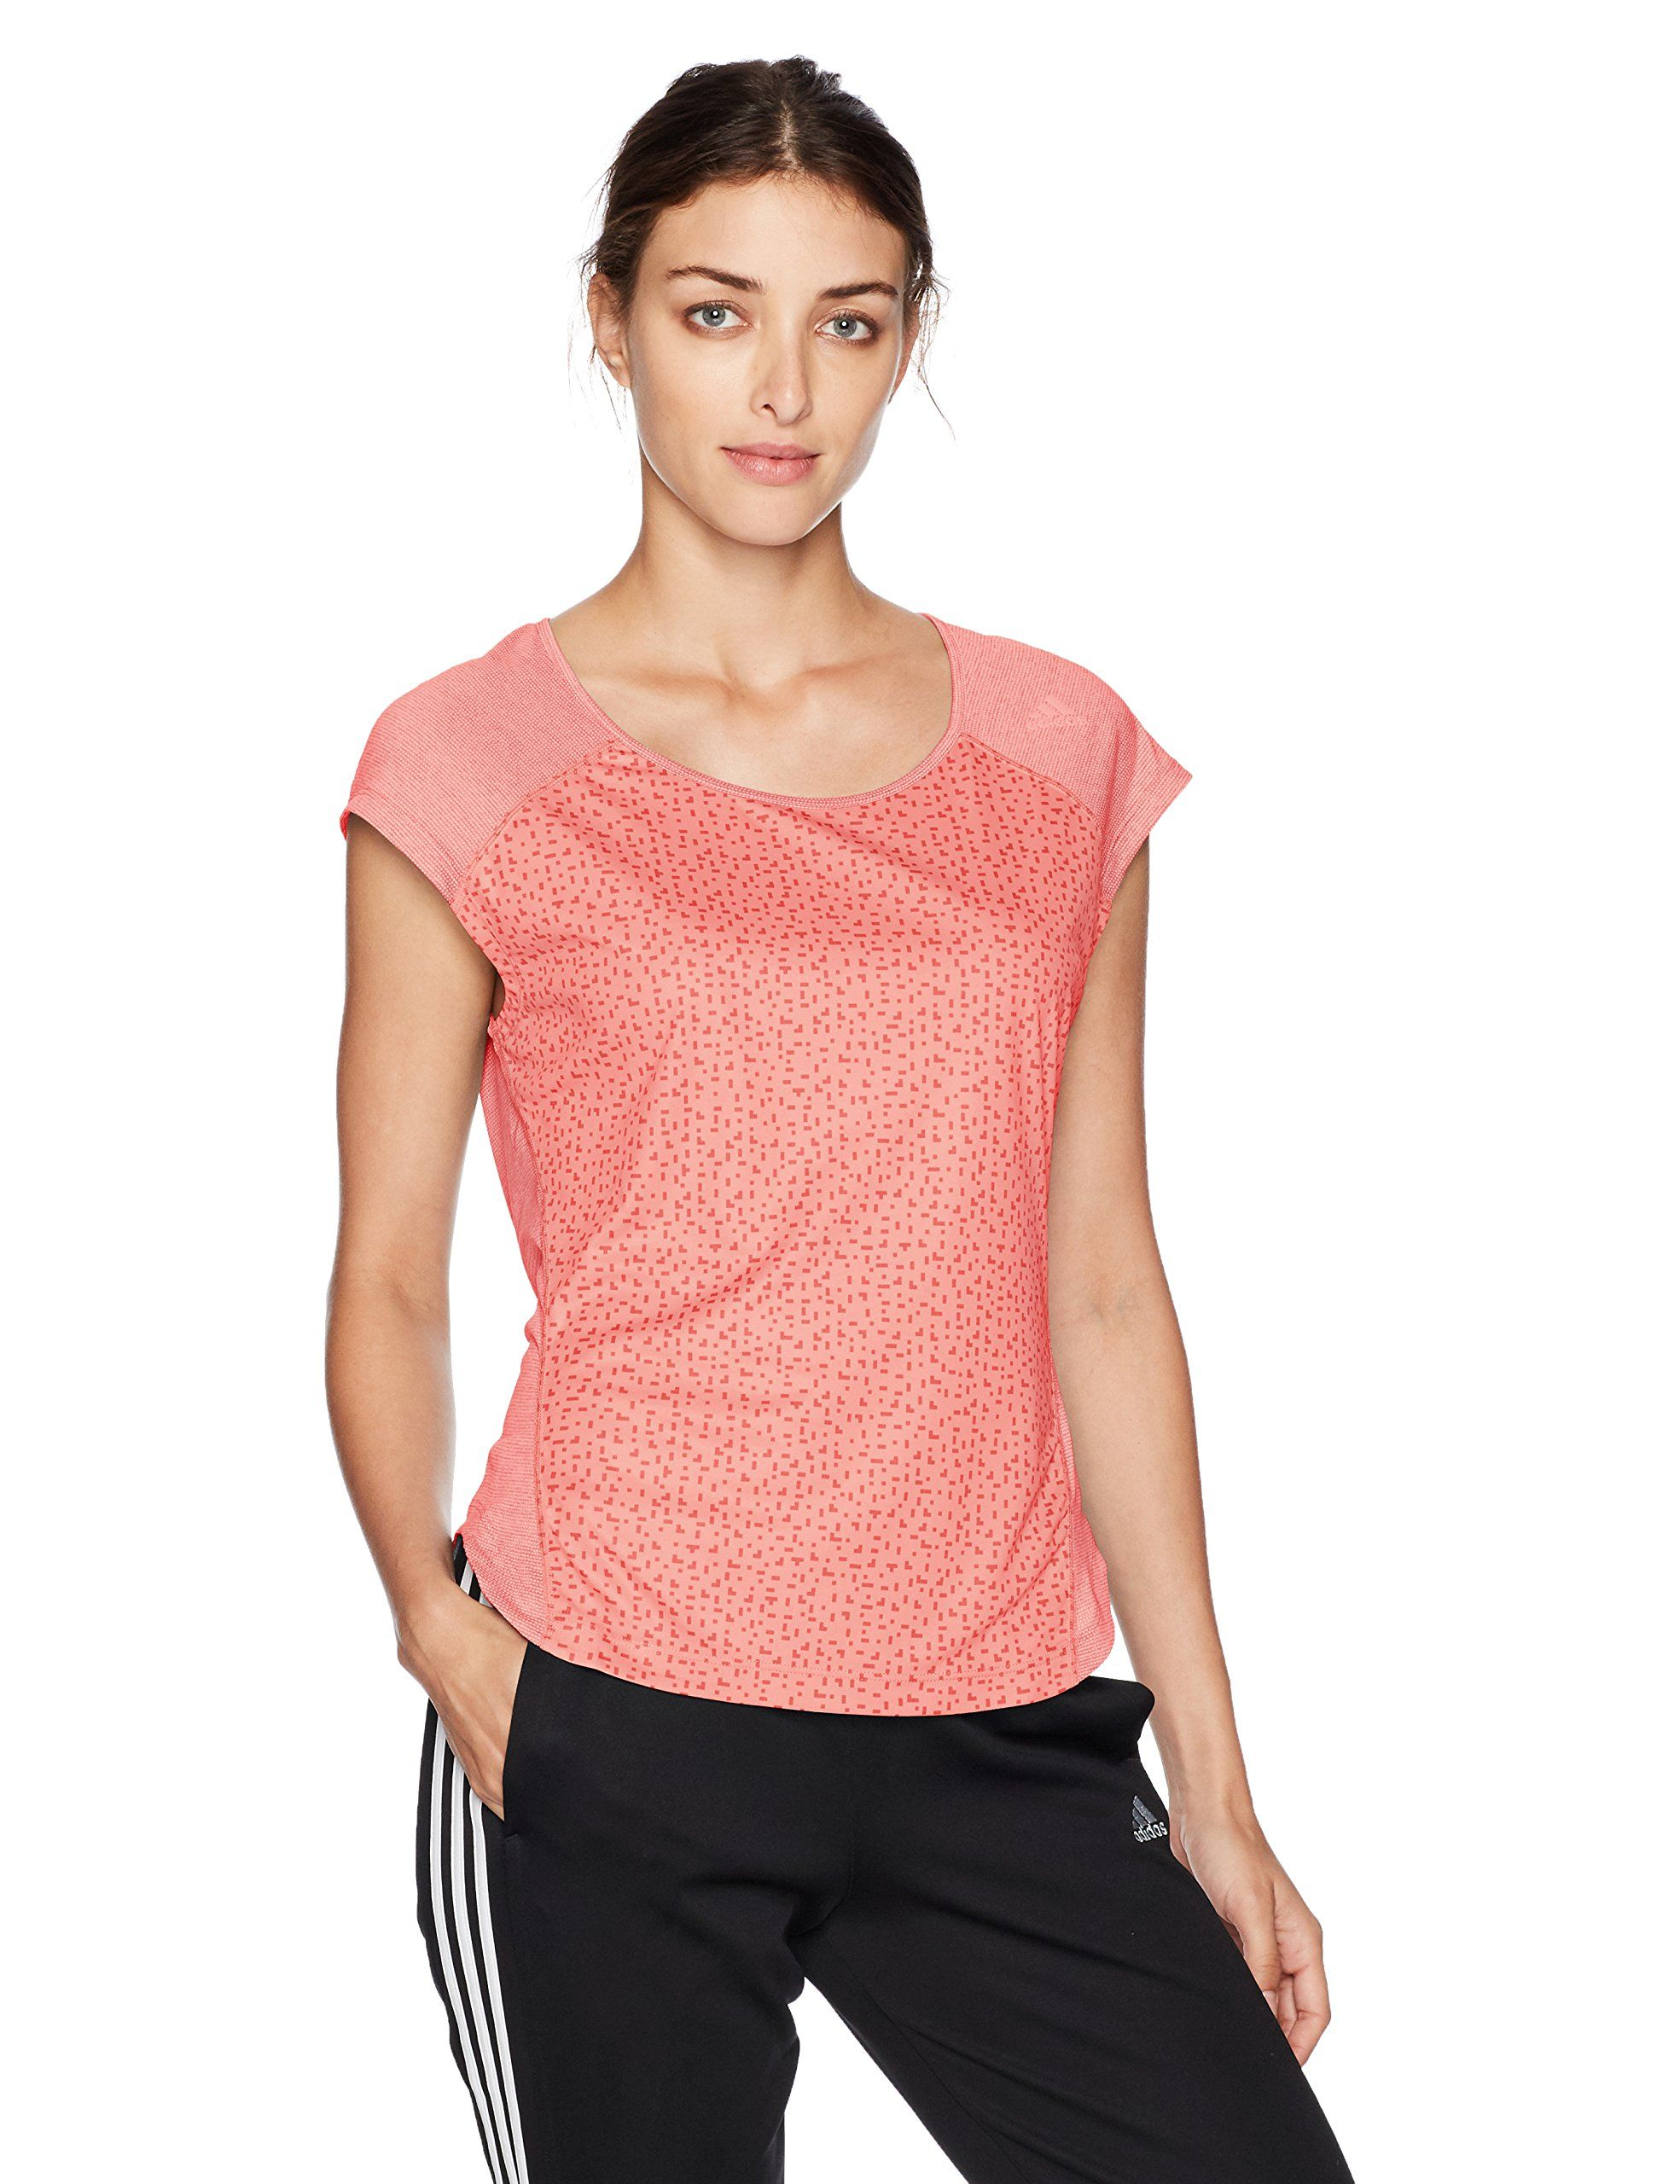 d573bed47 adidas Womens Running Supernova Tokyo Short sleeve Tee Tactile Rose Tactile  Pink Large     Details can be found by clicking on the image.